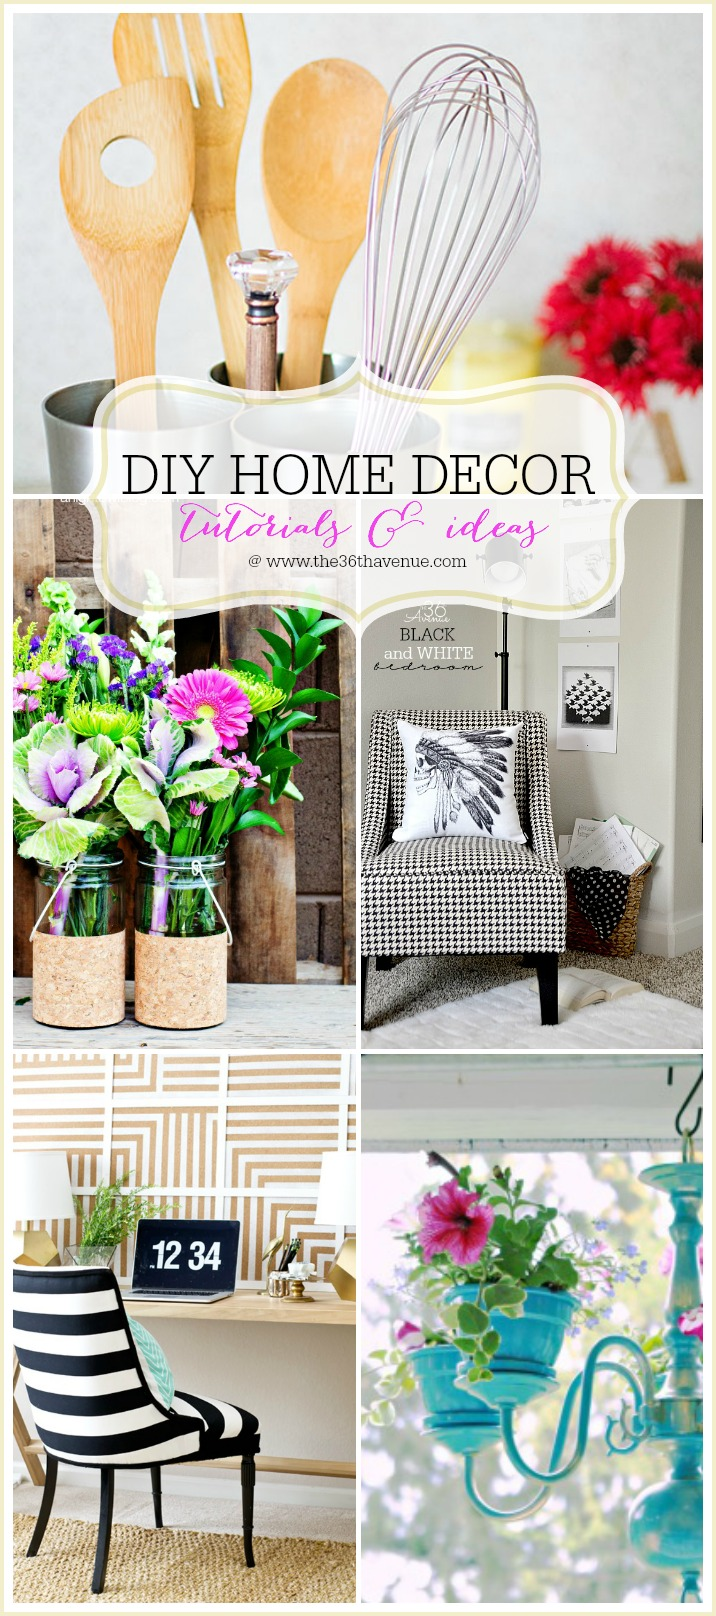 The 36th avenue home decor diy projects the 36th avenue Home design ideas diy